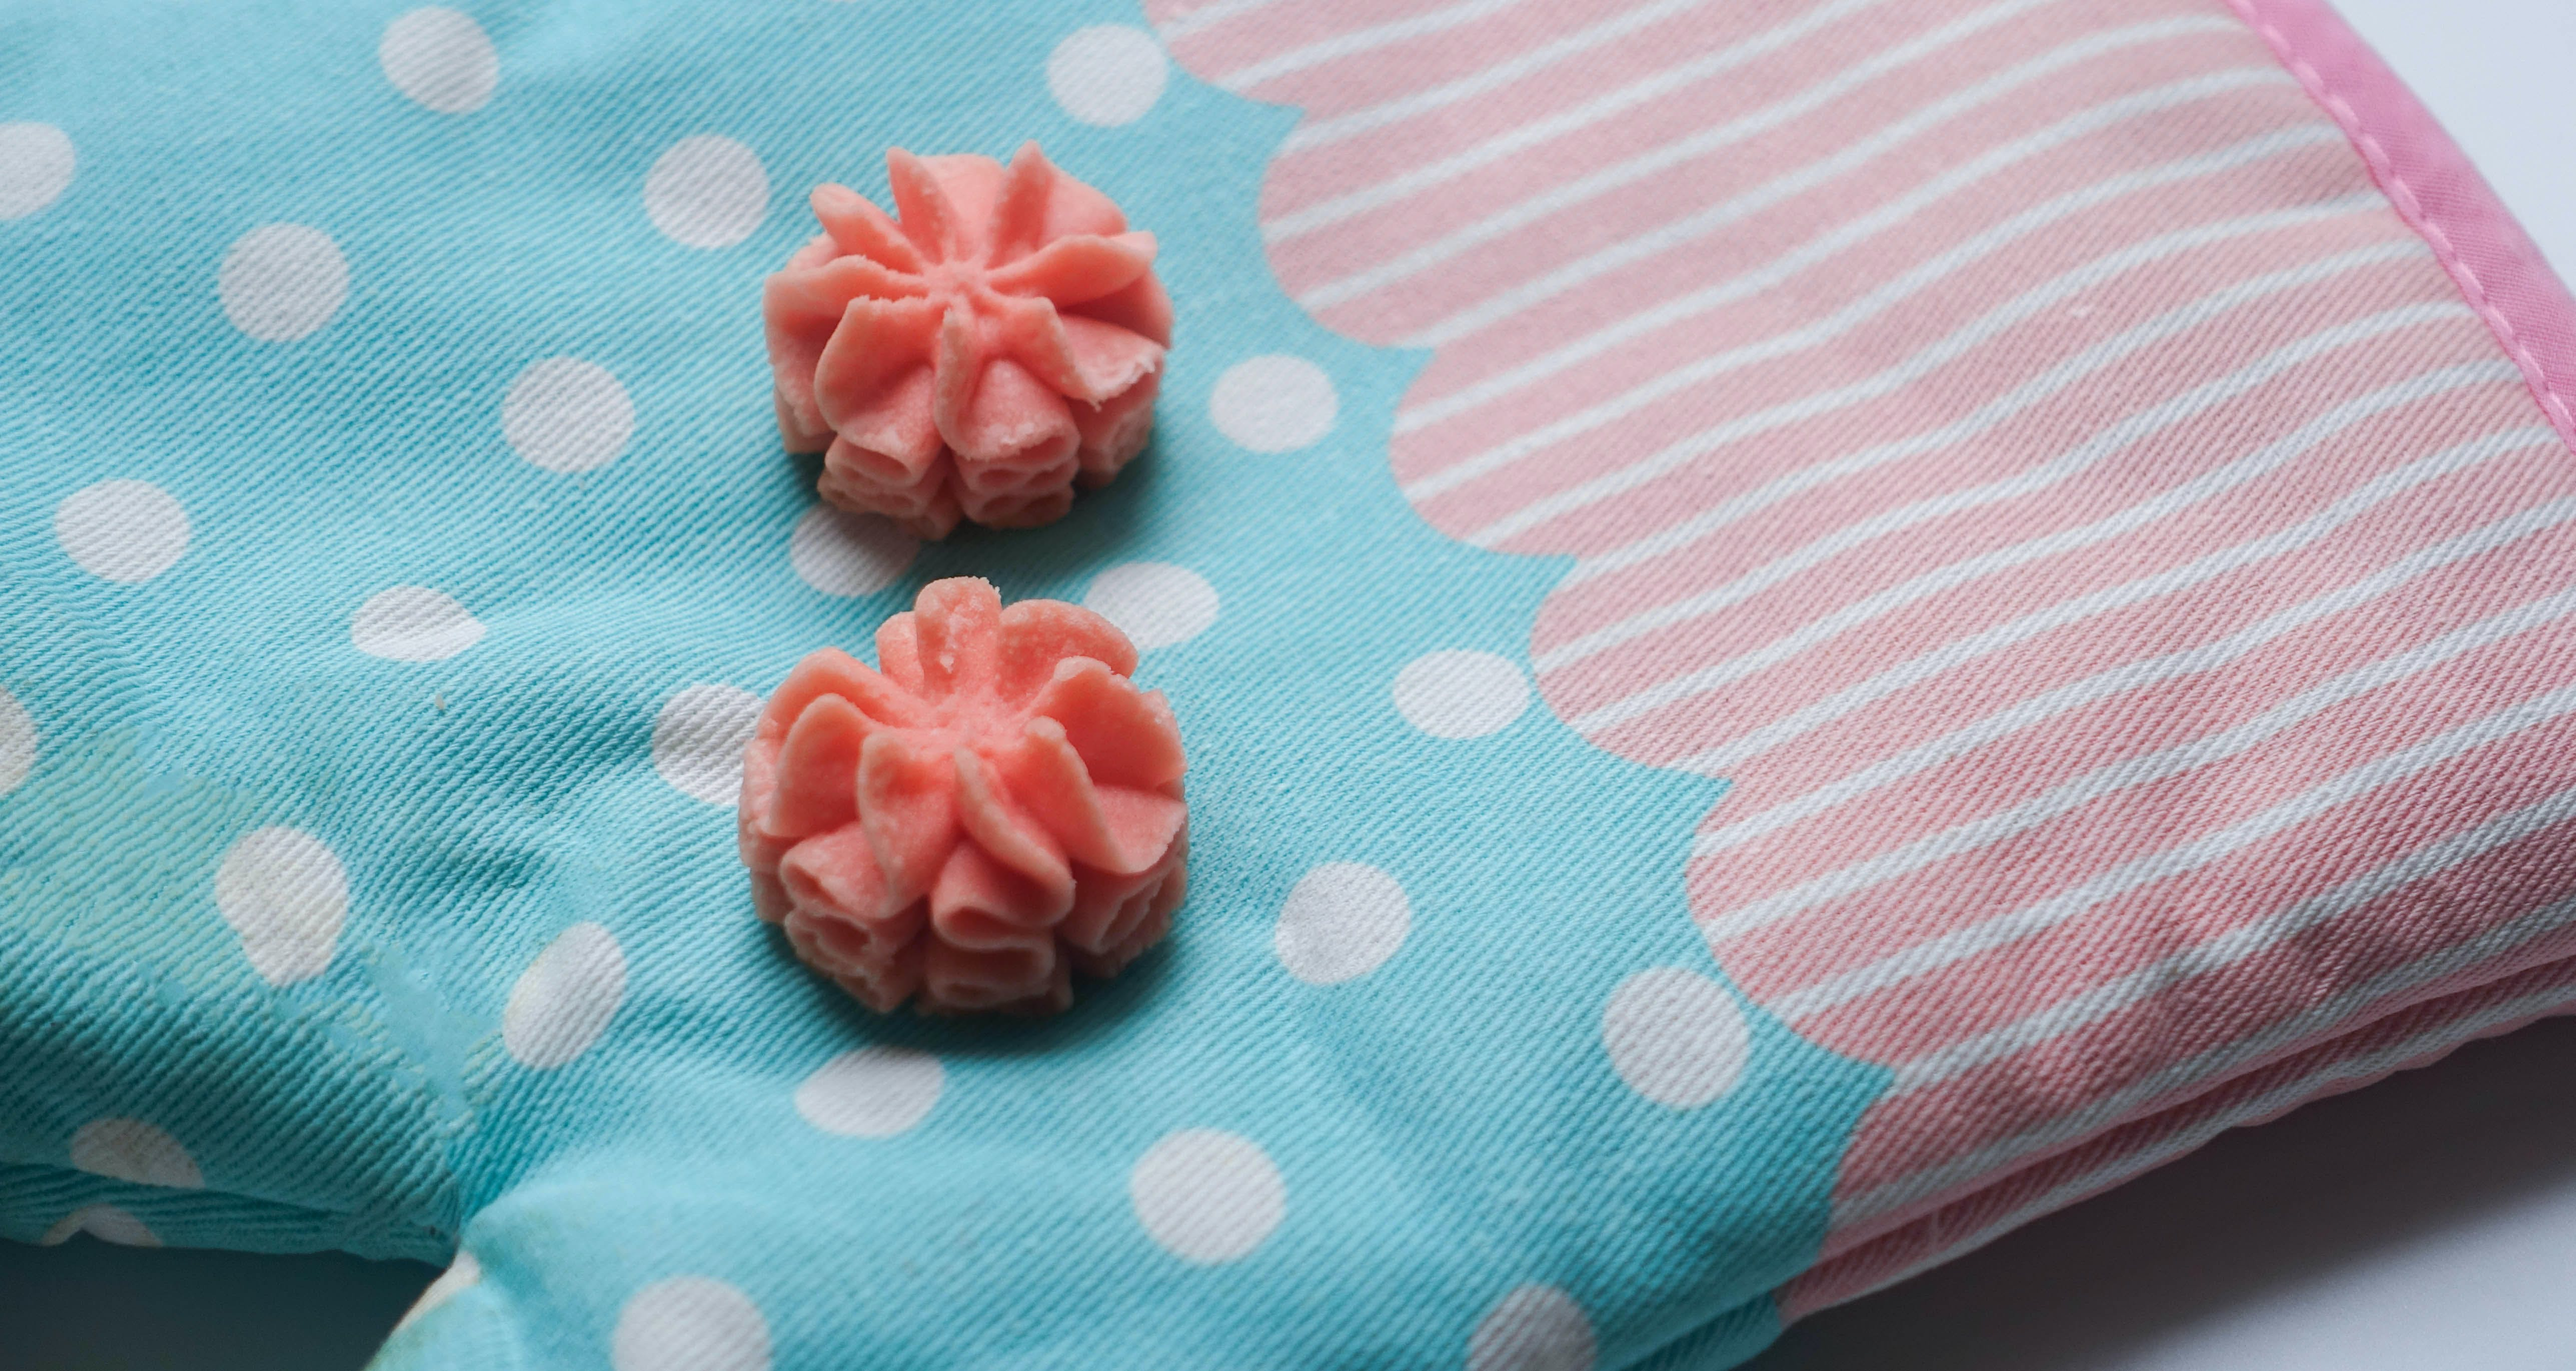 Free stock photo of cookies, pink